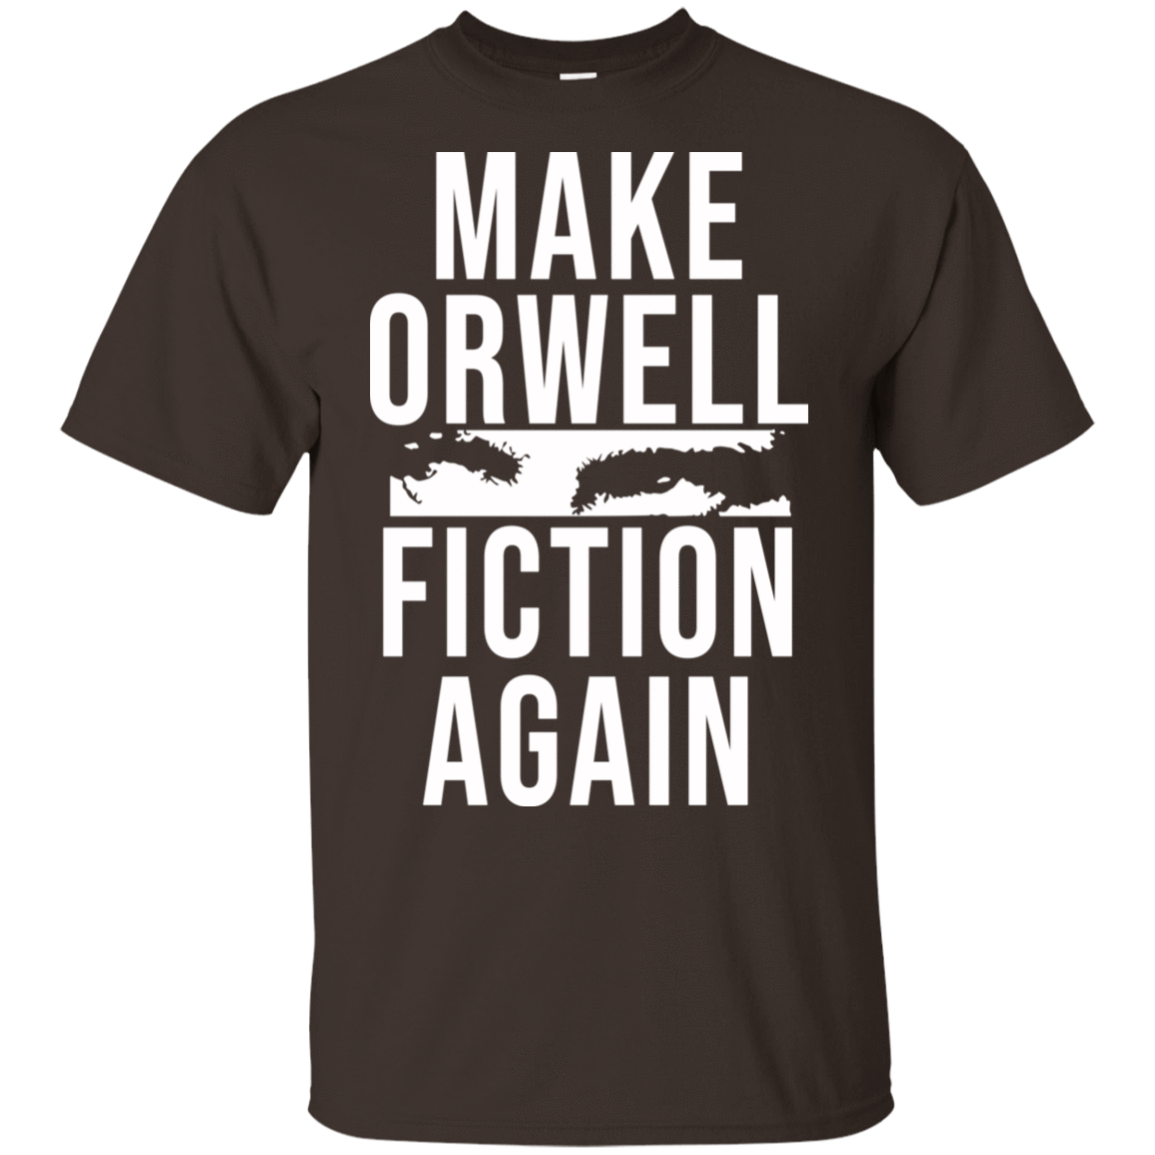 Make Orwell Fiction Again 22-2283-74209466-12087 - Tee Ript